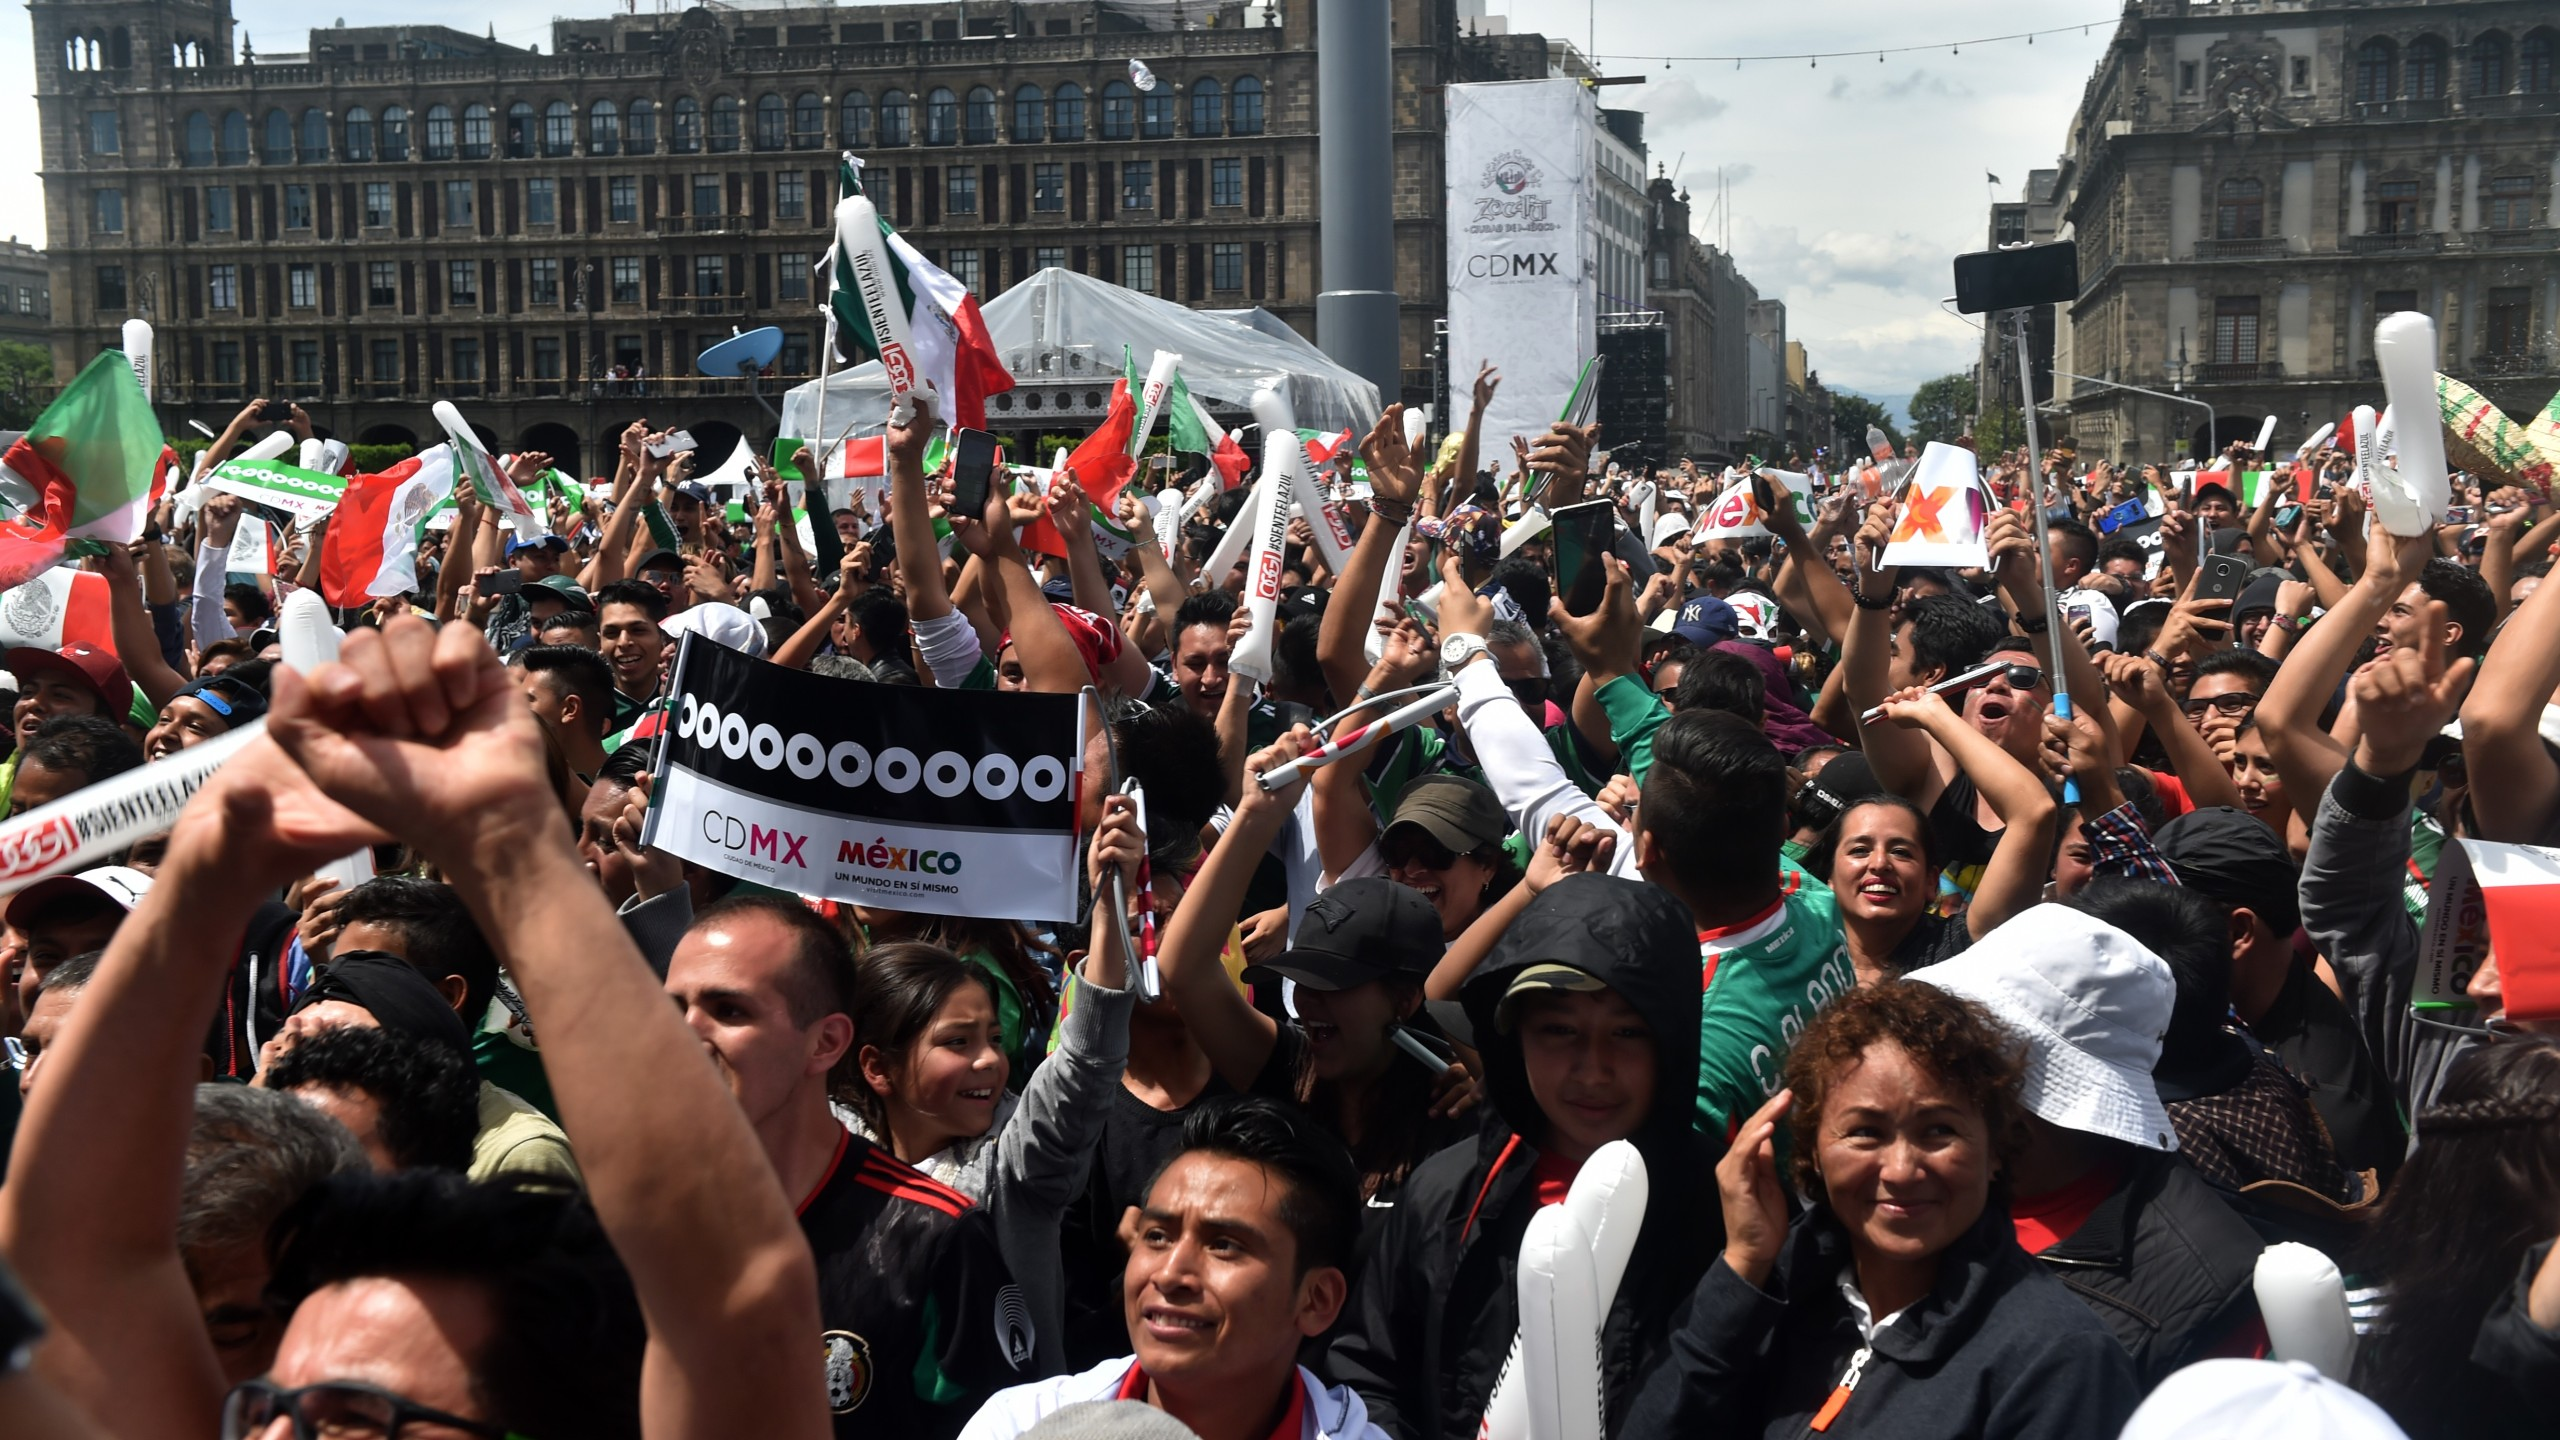 Fans of Mexico's football team celebrate during a public event at the Zocalo Square in Mexico City, on June 17 2018. (Credit: RODRIGO ARANGUA/AFP/Getty Images)